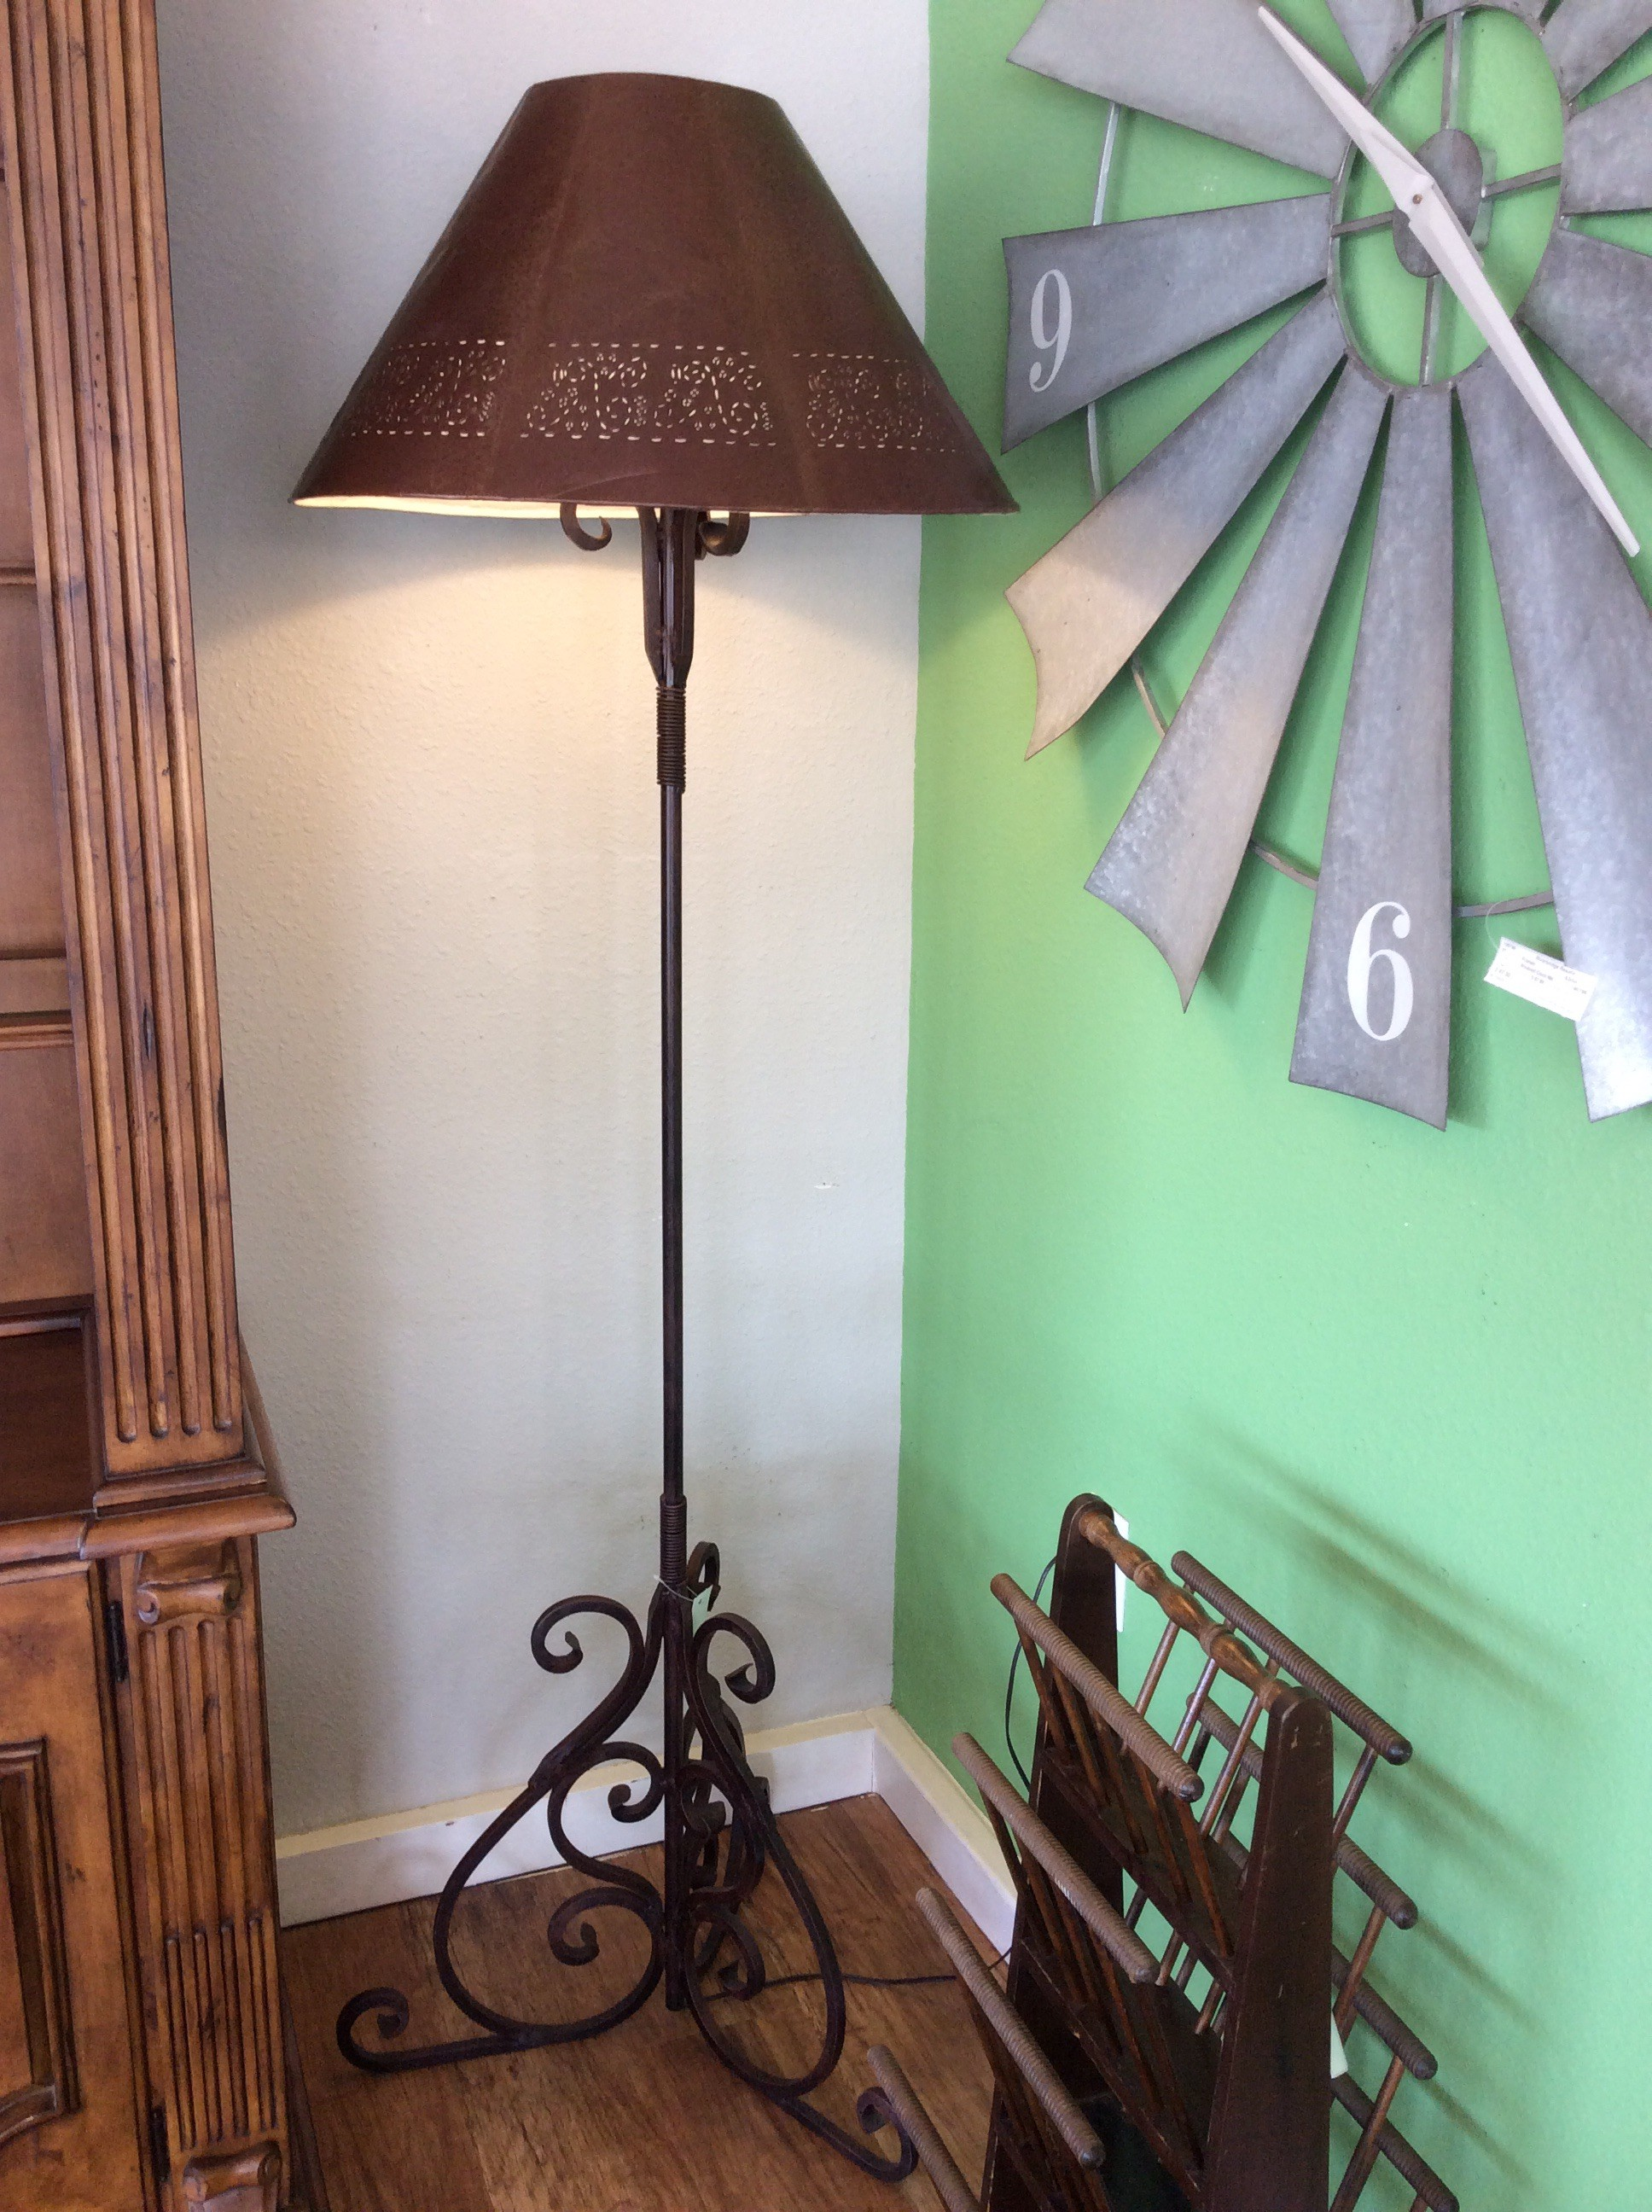 This is a charming floor lamp! Tall and slender, the painted iron base features lovely curvy scrollwork. The shade is an attractive contrast, kind of folkloreish or rustic in style.